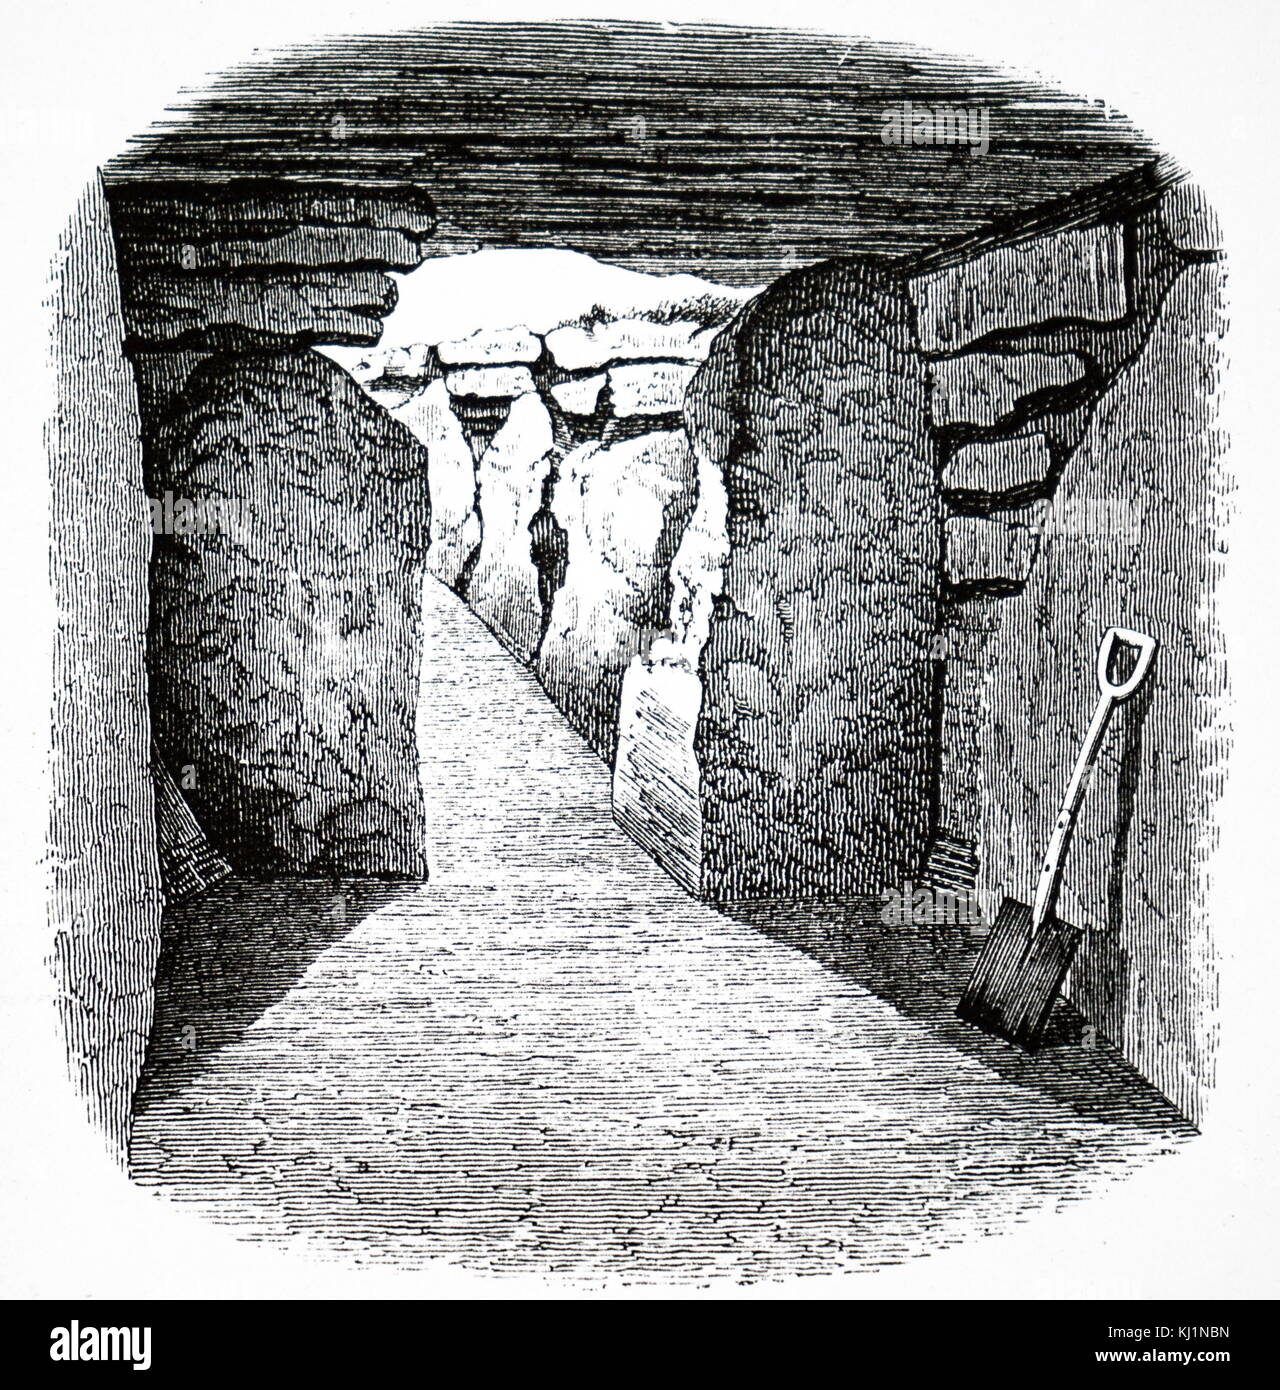 Engraving depicting the newly excavated Long Barrow (tumulus) near West Kennet, Wiltshire. This burial chamber contained - Stock Image